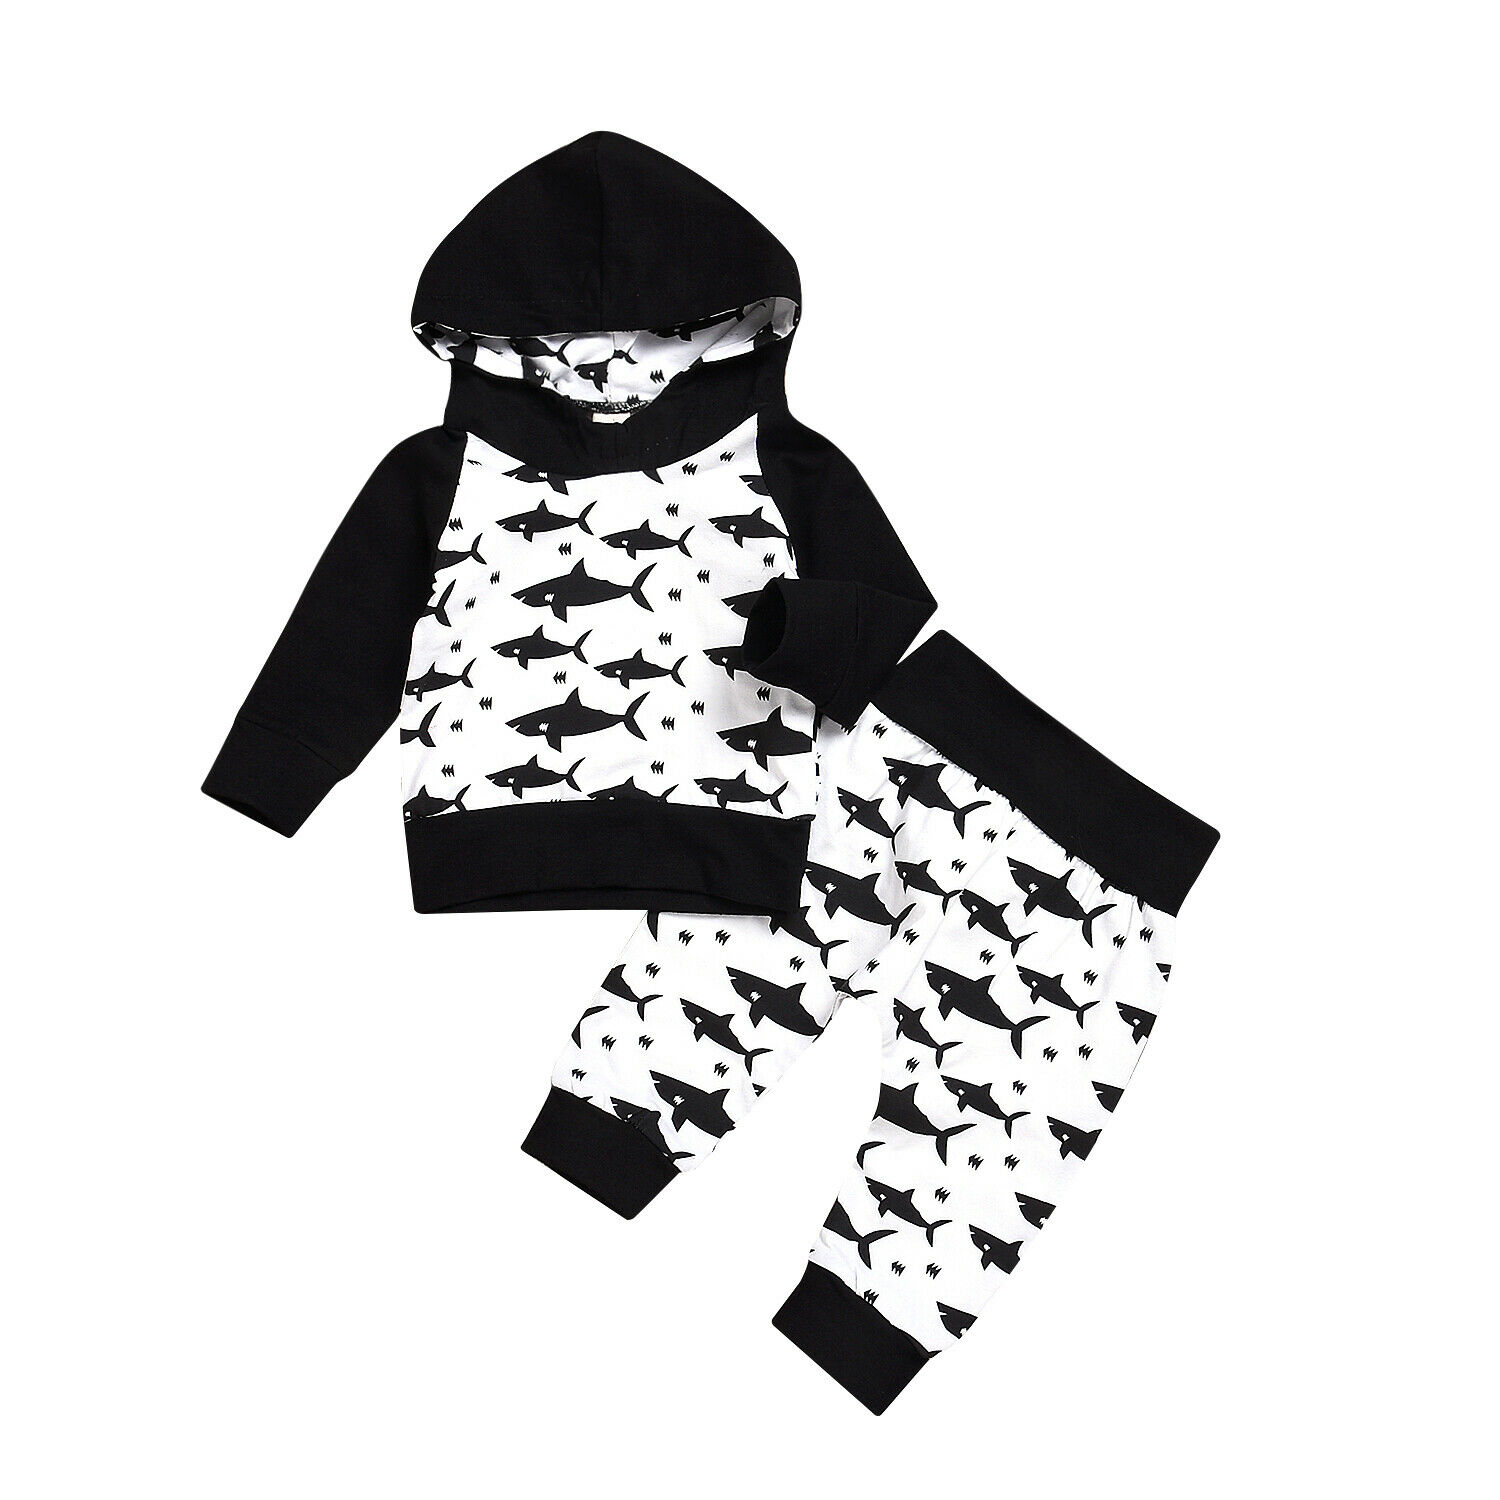 Tops Pants Fish-Outfits Long-Sleeves Toddler Baby-Boys 2pcs-Set Winter New Warm for Autumn